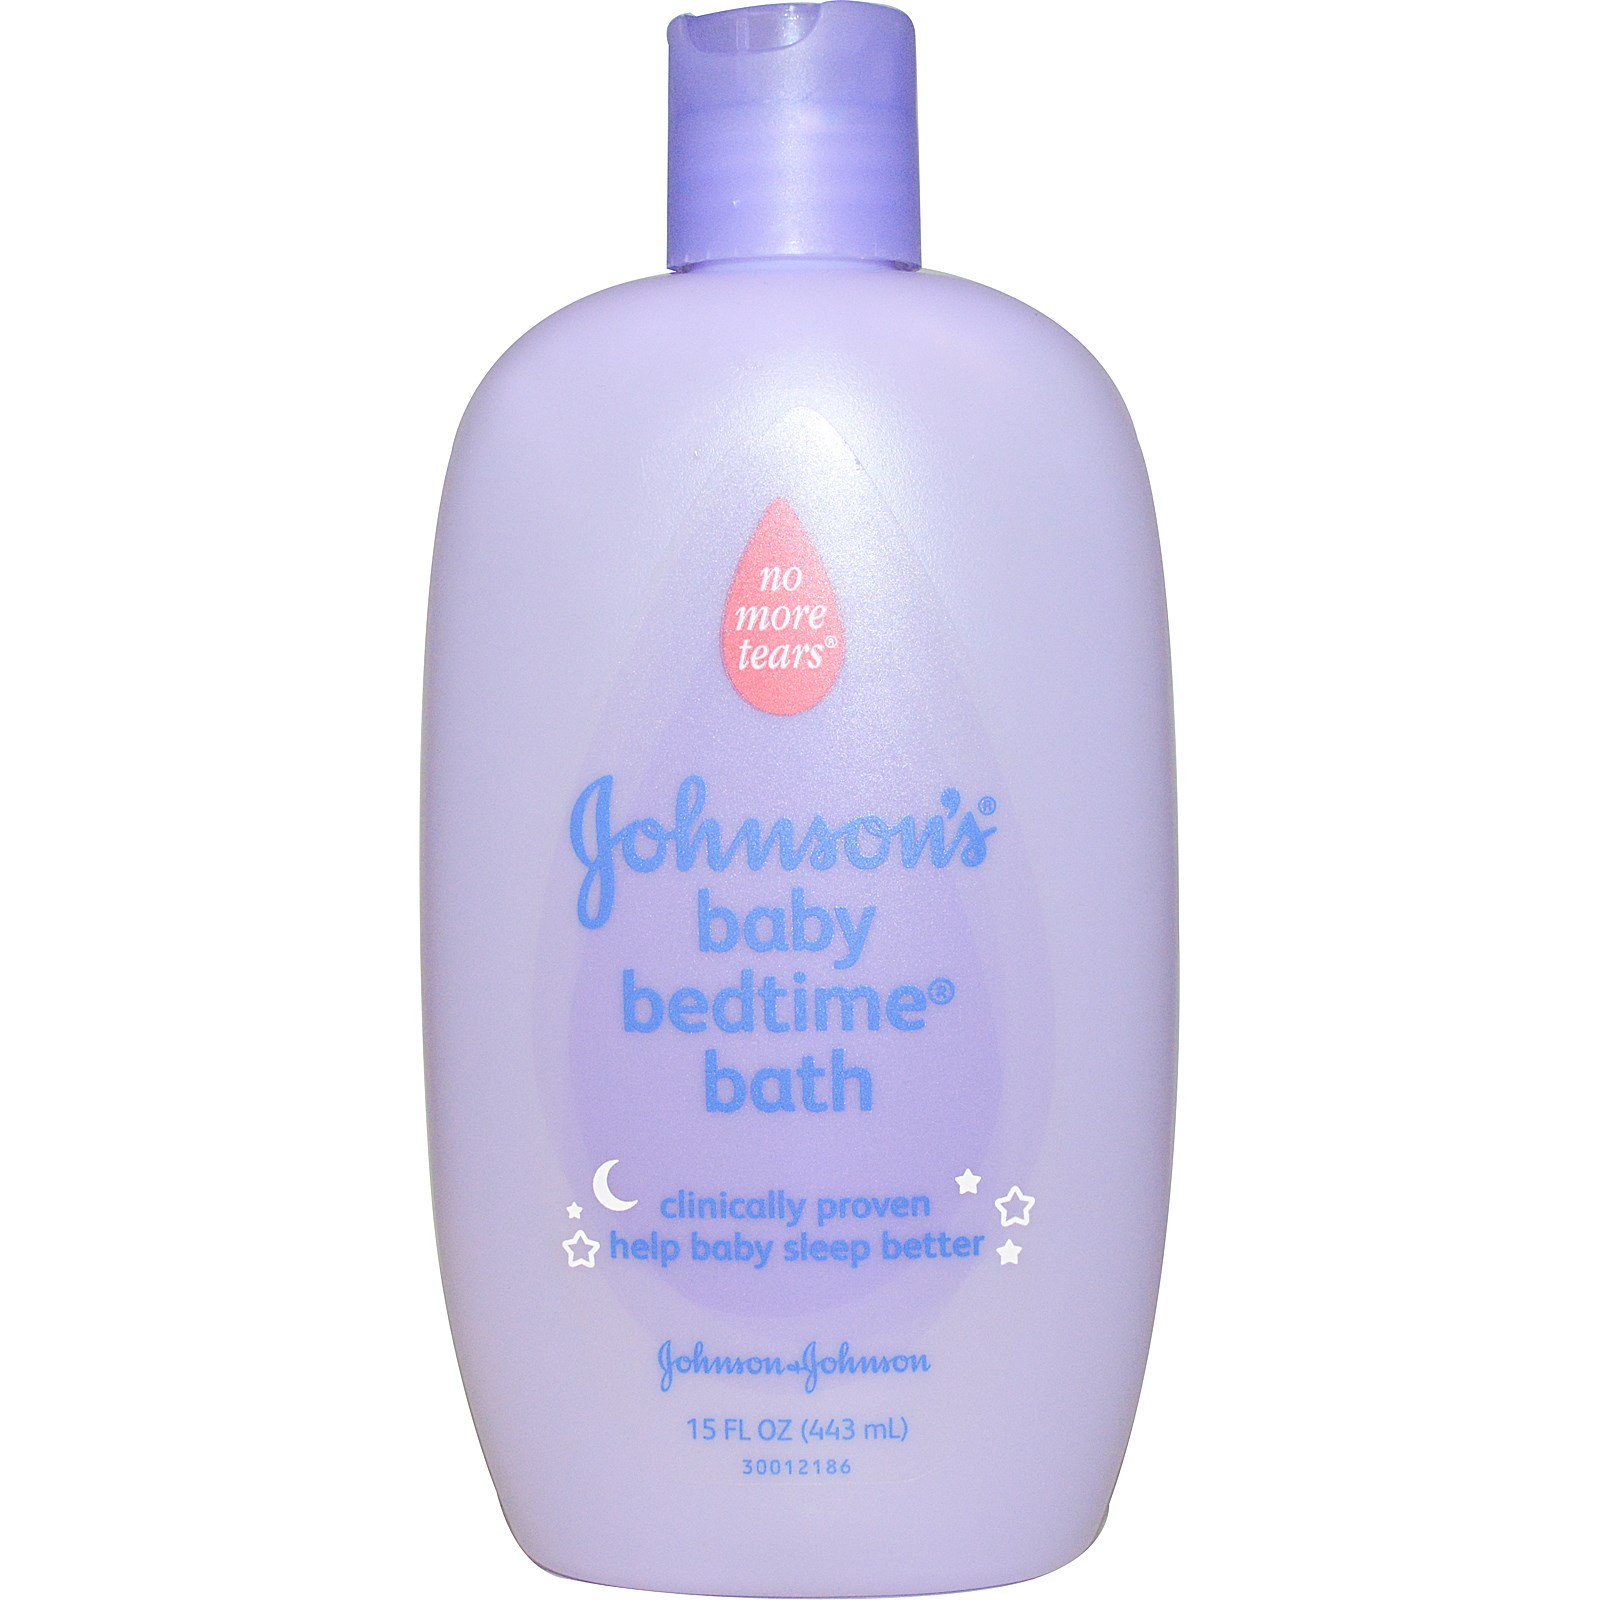 Johnson\'s, Baby Bedtime Bath, 15 fl oz (443 ml) - iHerb.com